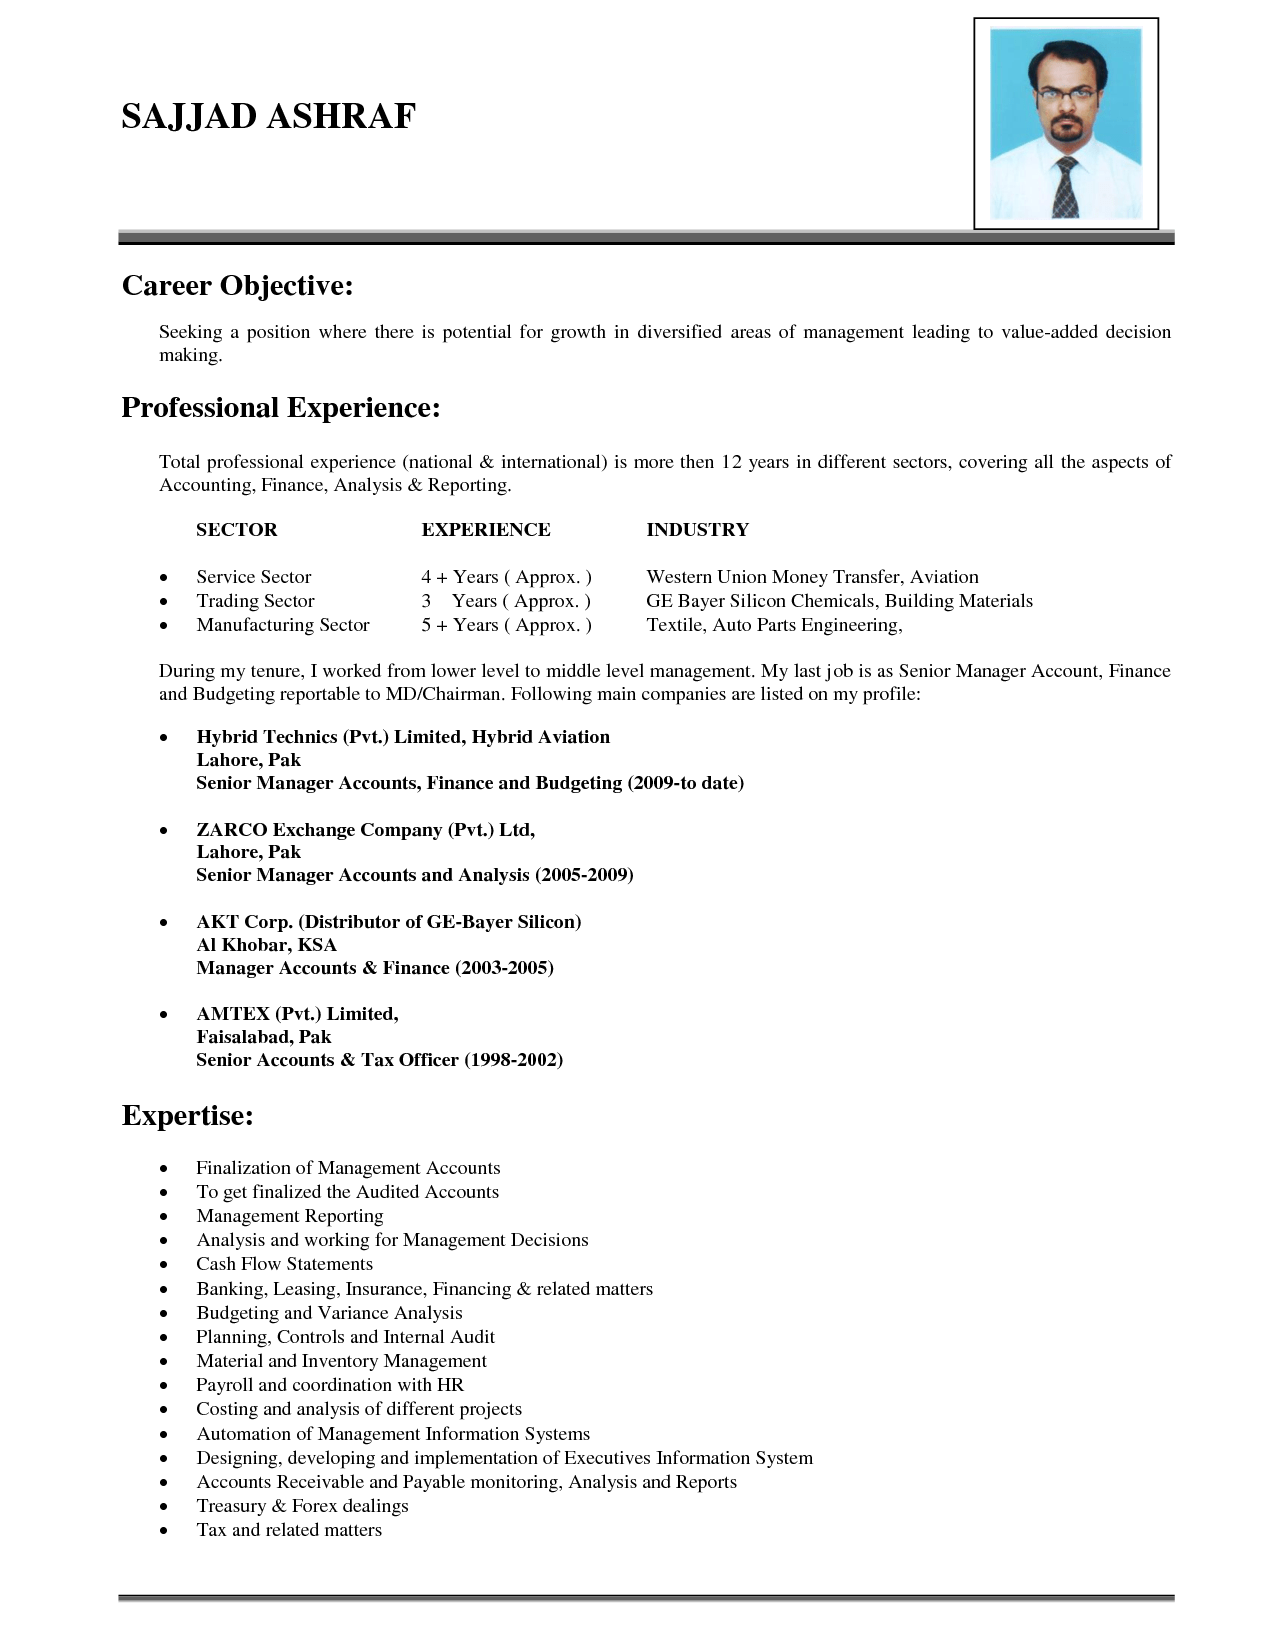 Some Good Career Objectives For Resume